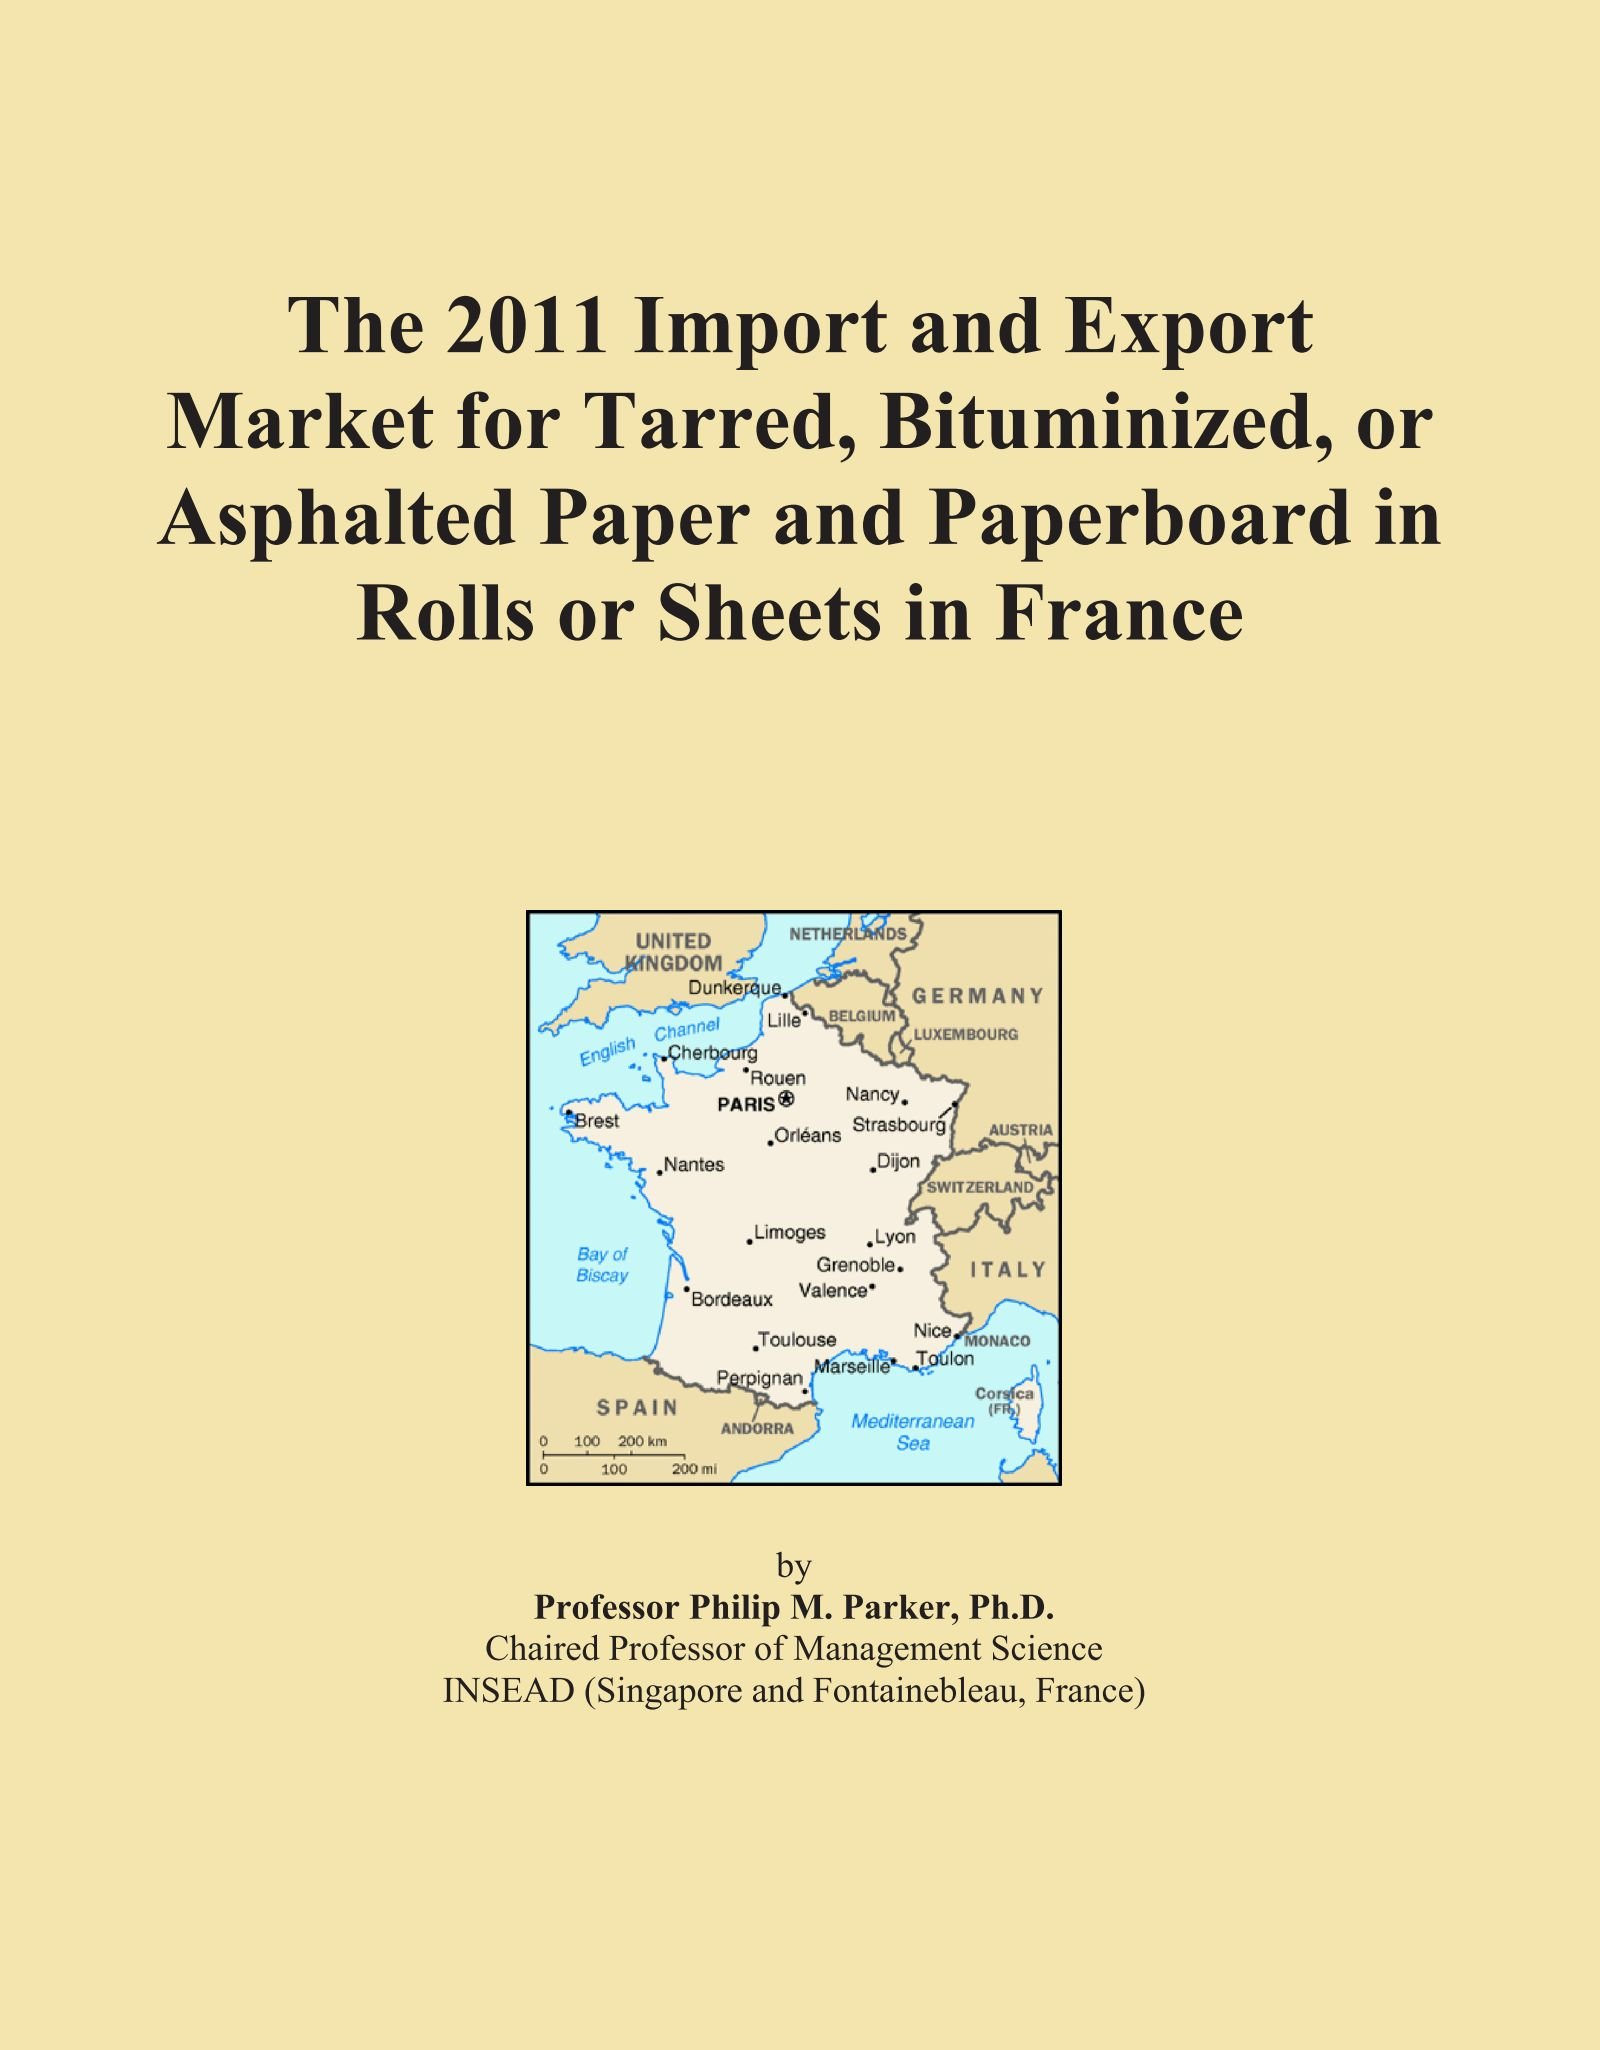 Download The 2011 Import and Export Market for Tarred, Bituminized, or Asphalted Paper and Paperboard in Rolls or Sheets in France ebook